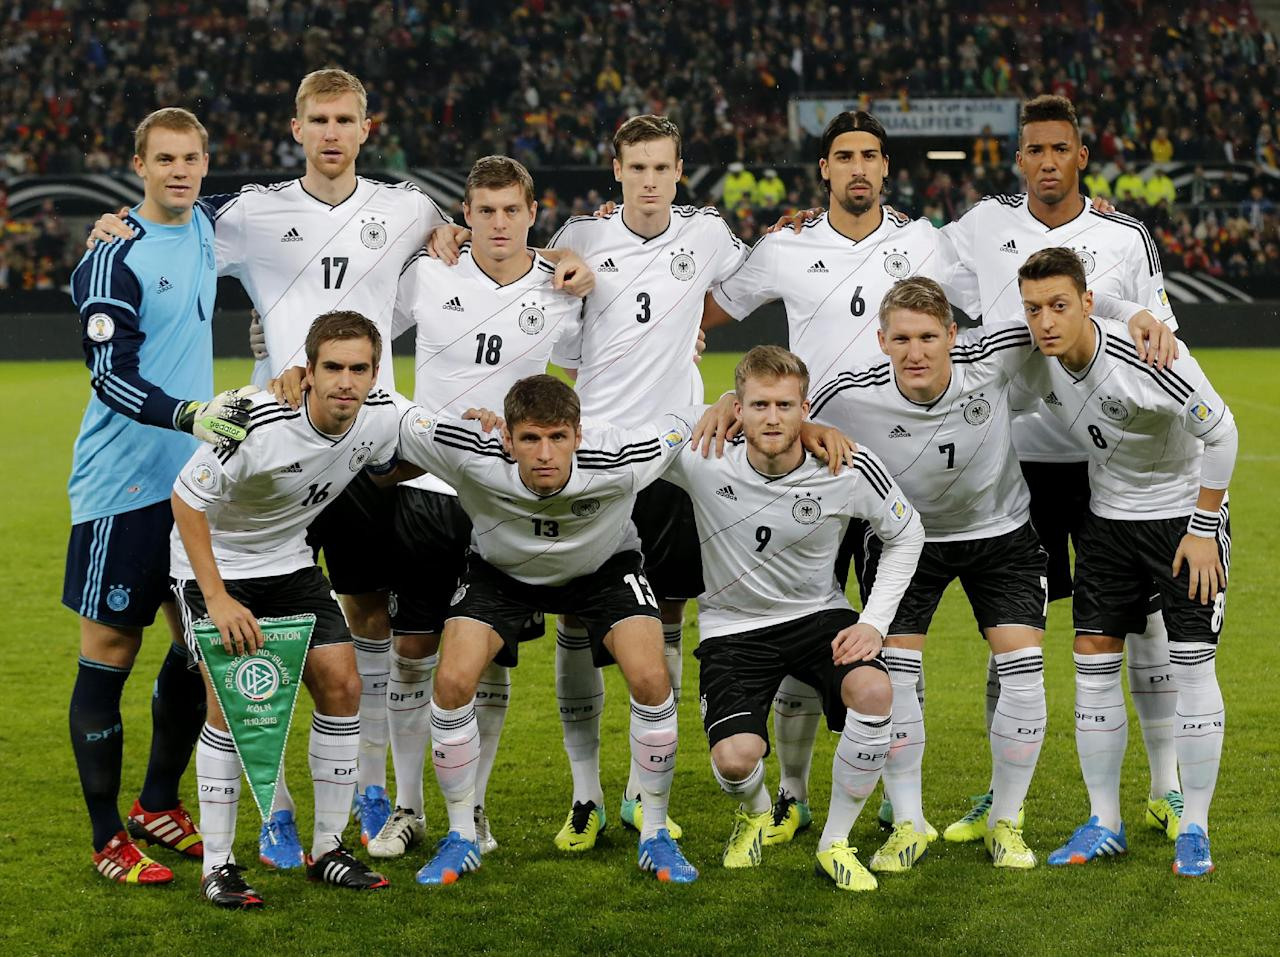 FILE - In this Oct 11, 2013 file photo, Germany soccer team poses prior to the start the World Cup Group C qualifying soccer match between Germany and Ireland in Cologne, Germany. Background from left: Manuel Neuer, Per Mertesacker, Toni Kroos. Marcell Jansen, Sami Khedira and Jerome Boateng. Foreground from left: Philipp Lahm, Thomas Mueller, Andre Schuerrle, Bastian Schweinsteiger and Mesut Ozil.  (AP Photo/Michael Probst, File)